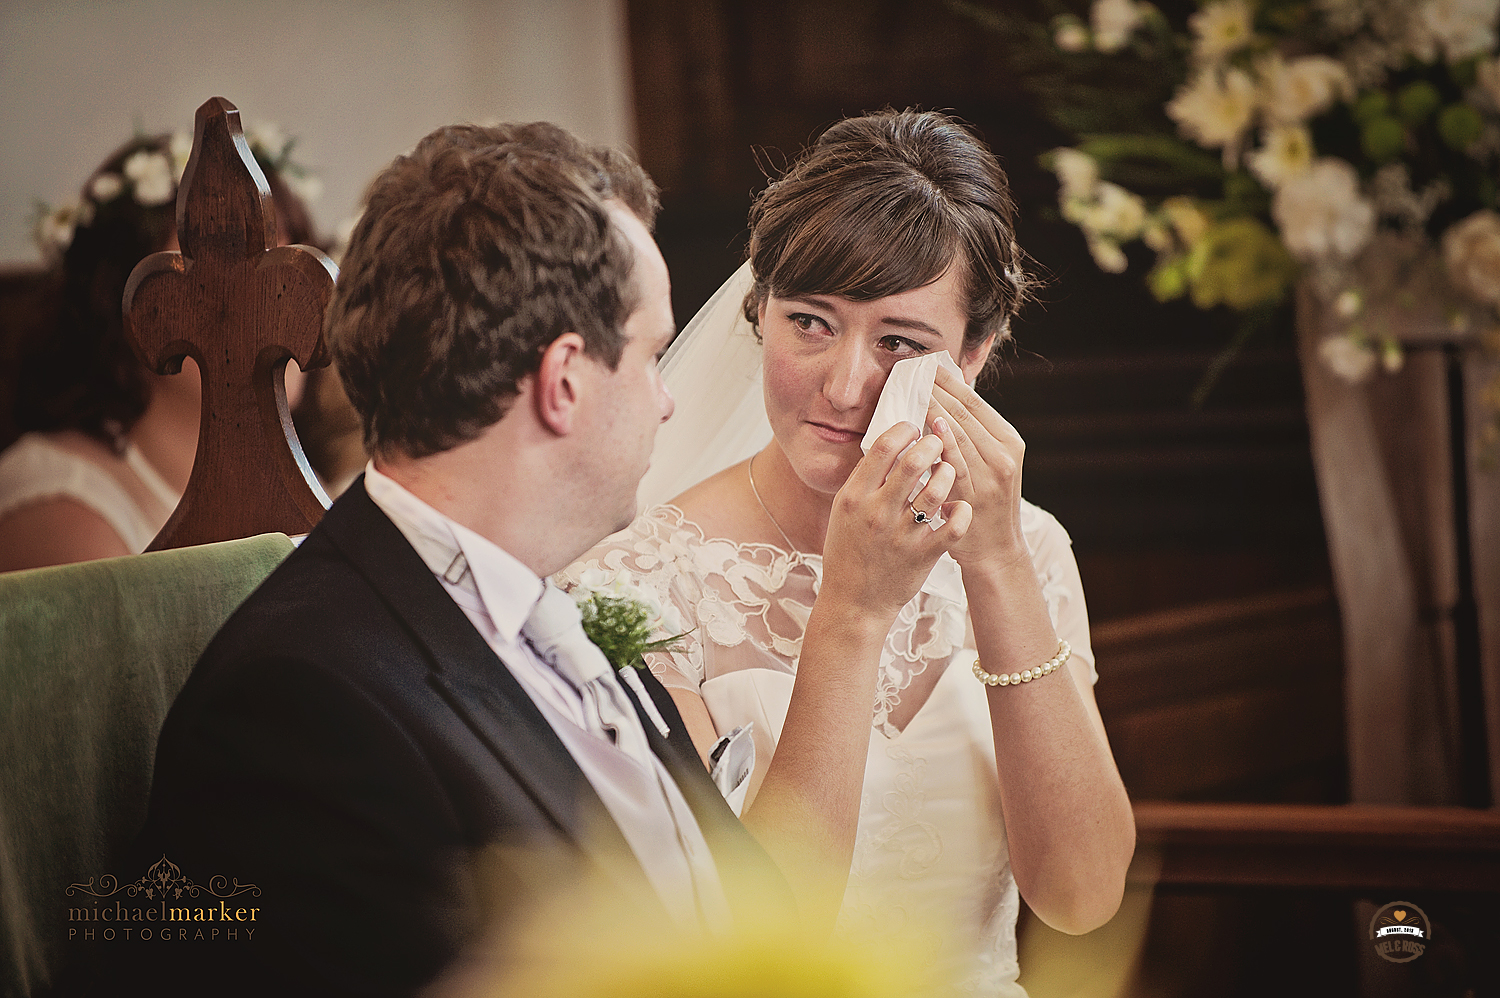 Bride wiping away tears during wedding ceremony